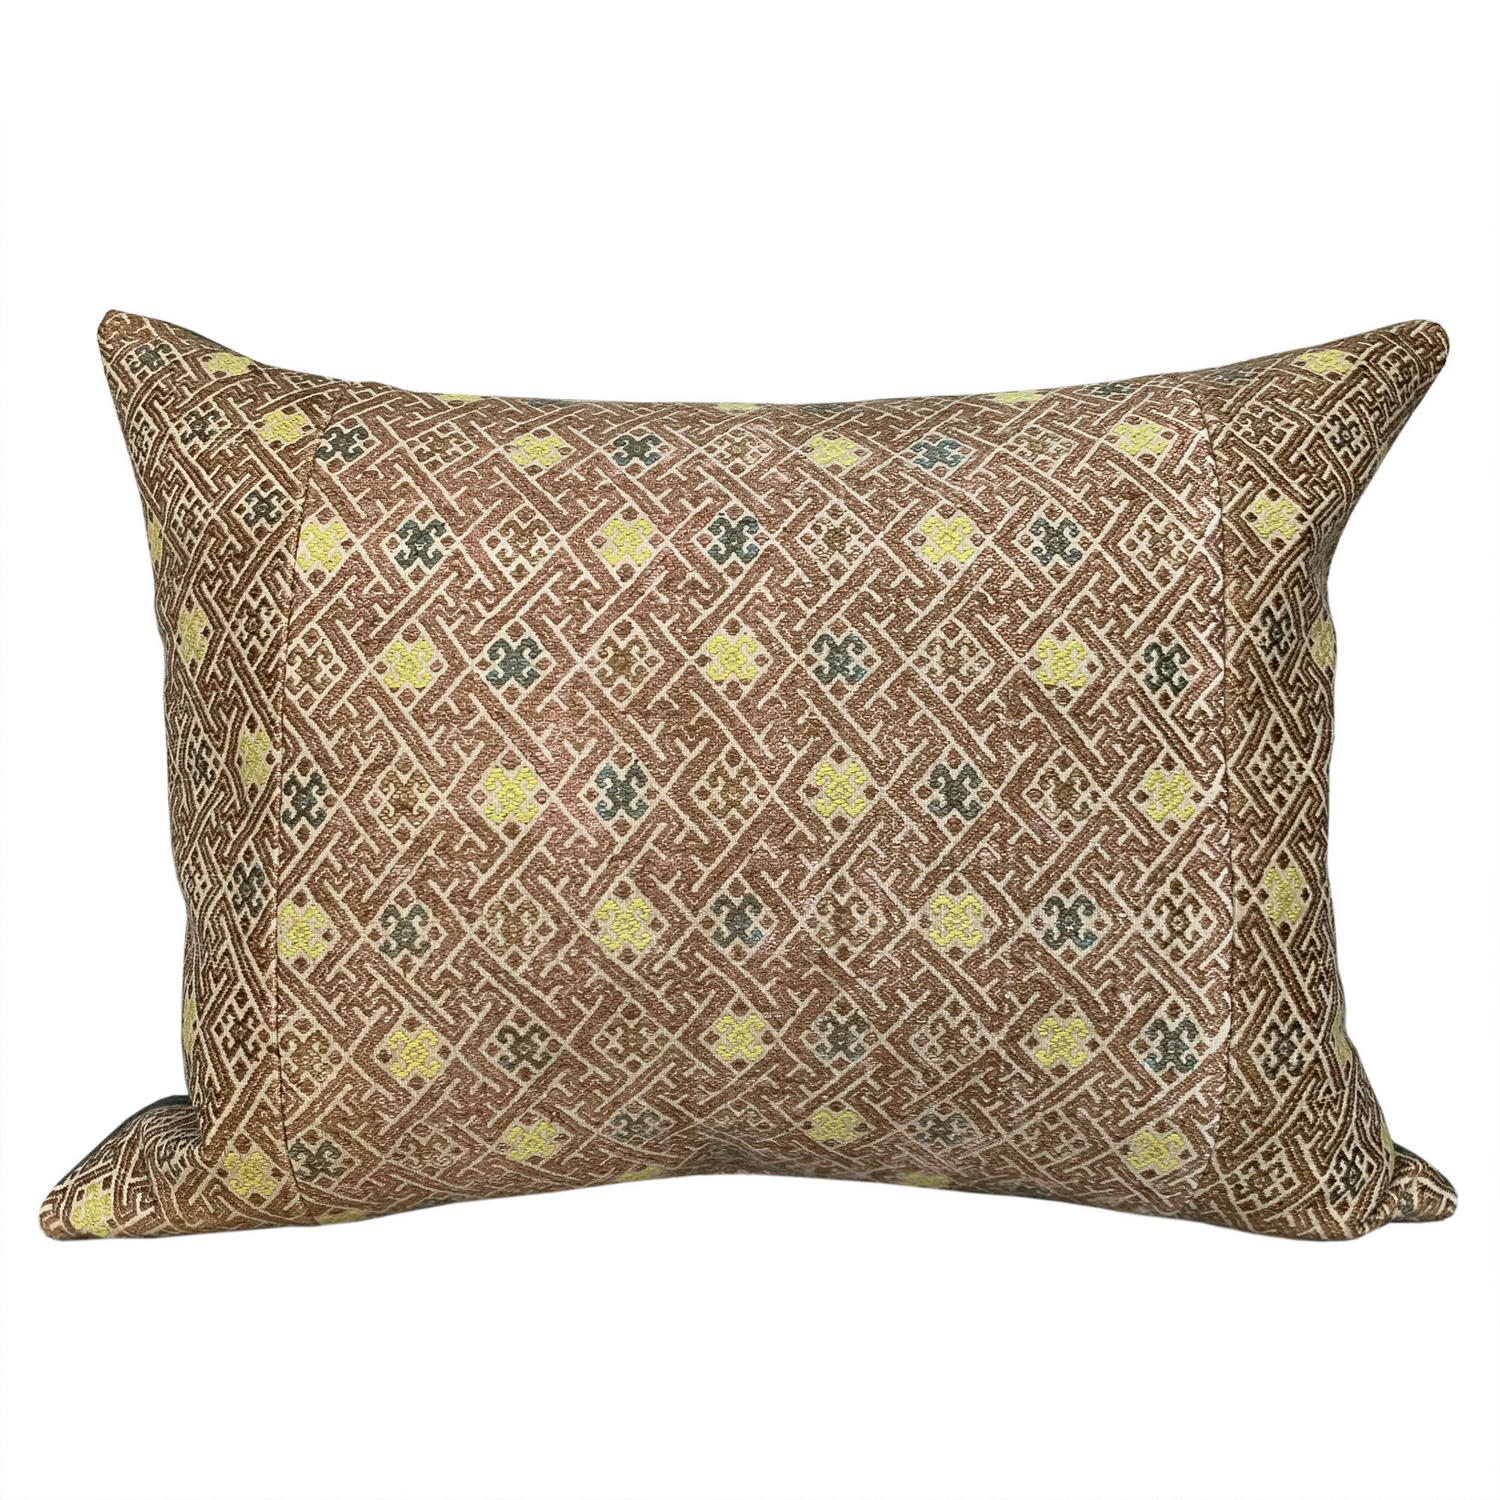 Gold Zhuang Cushion